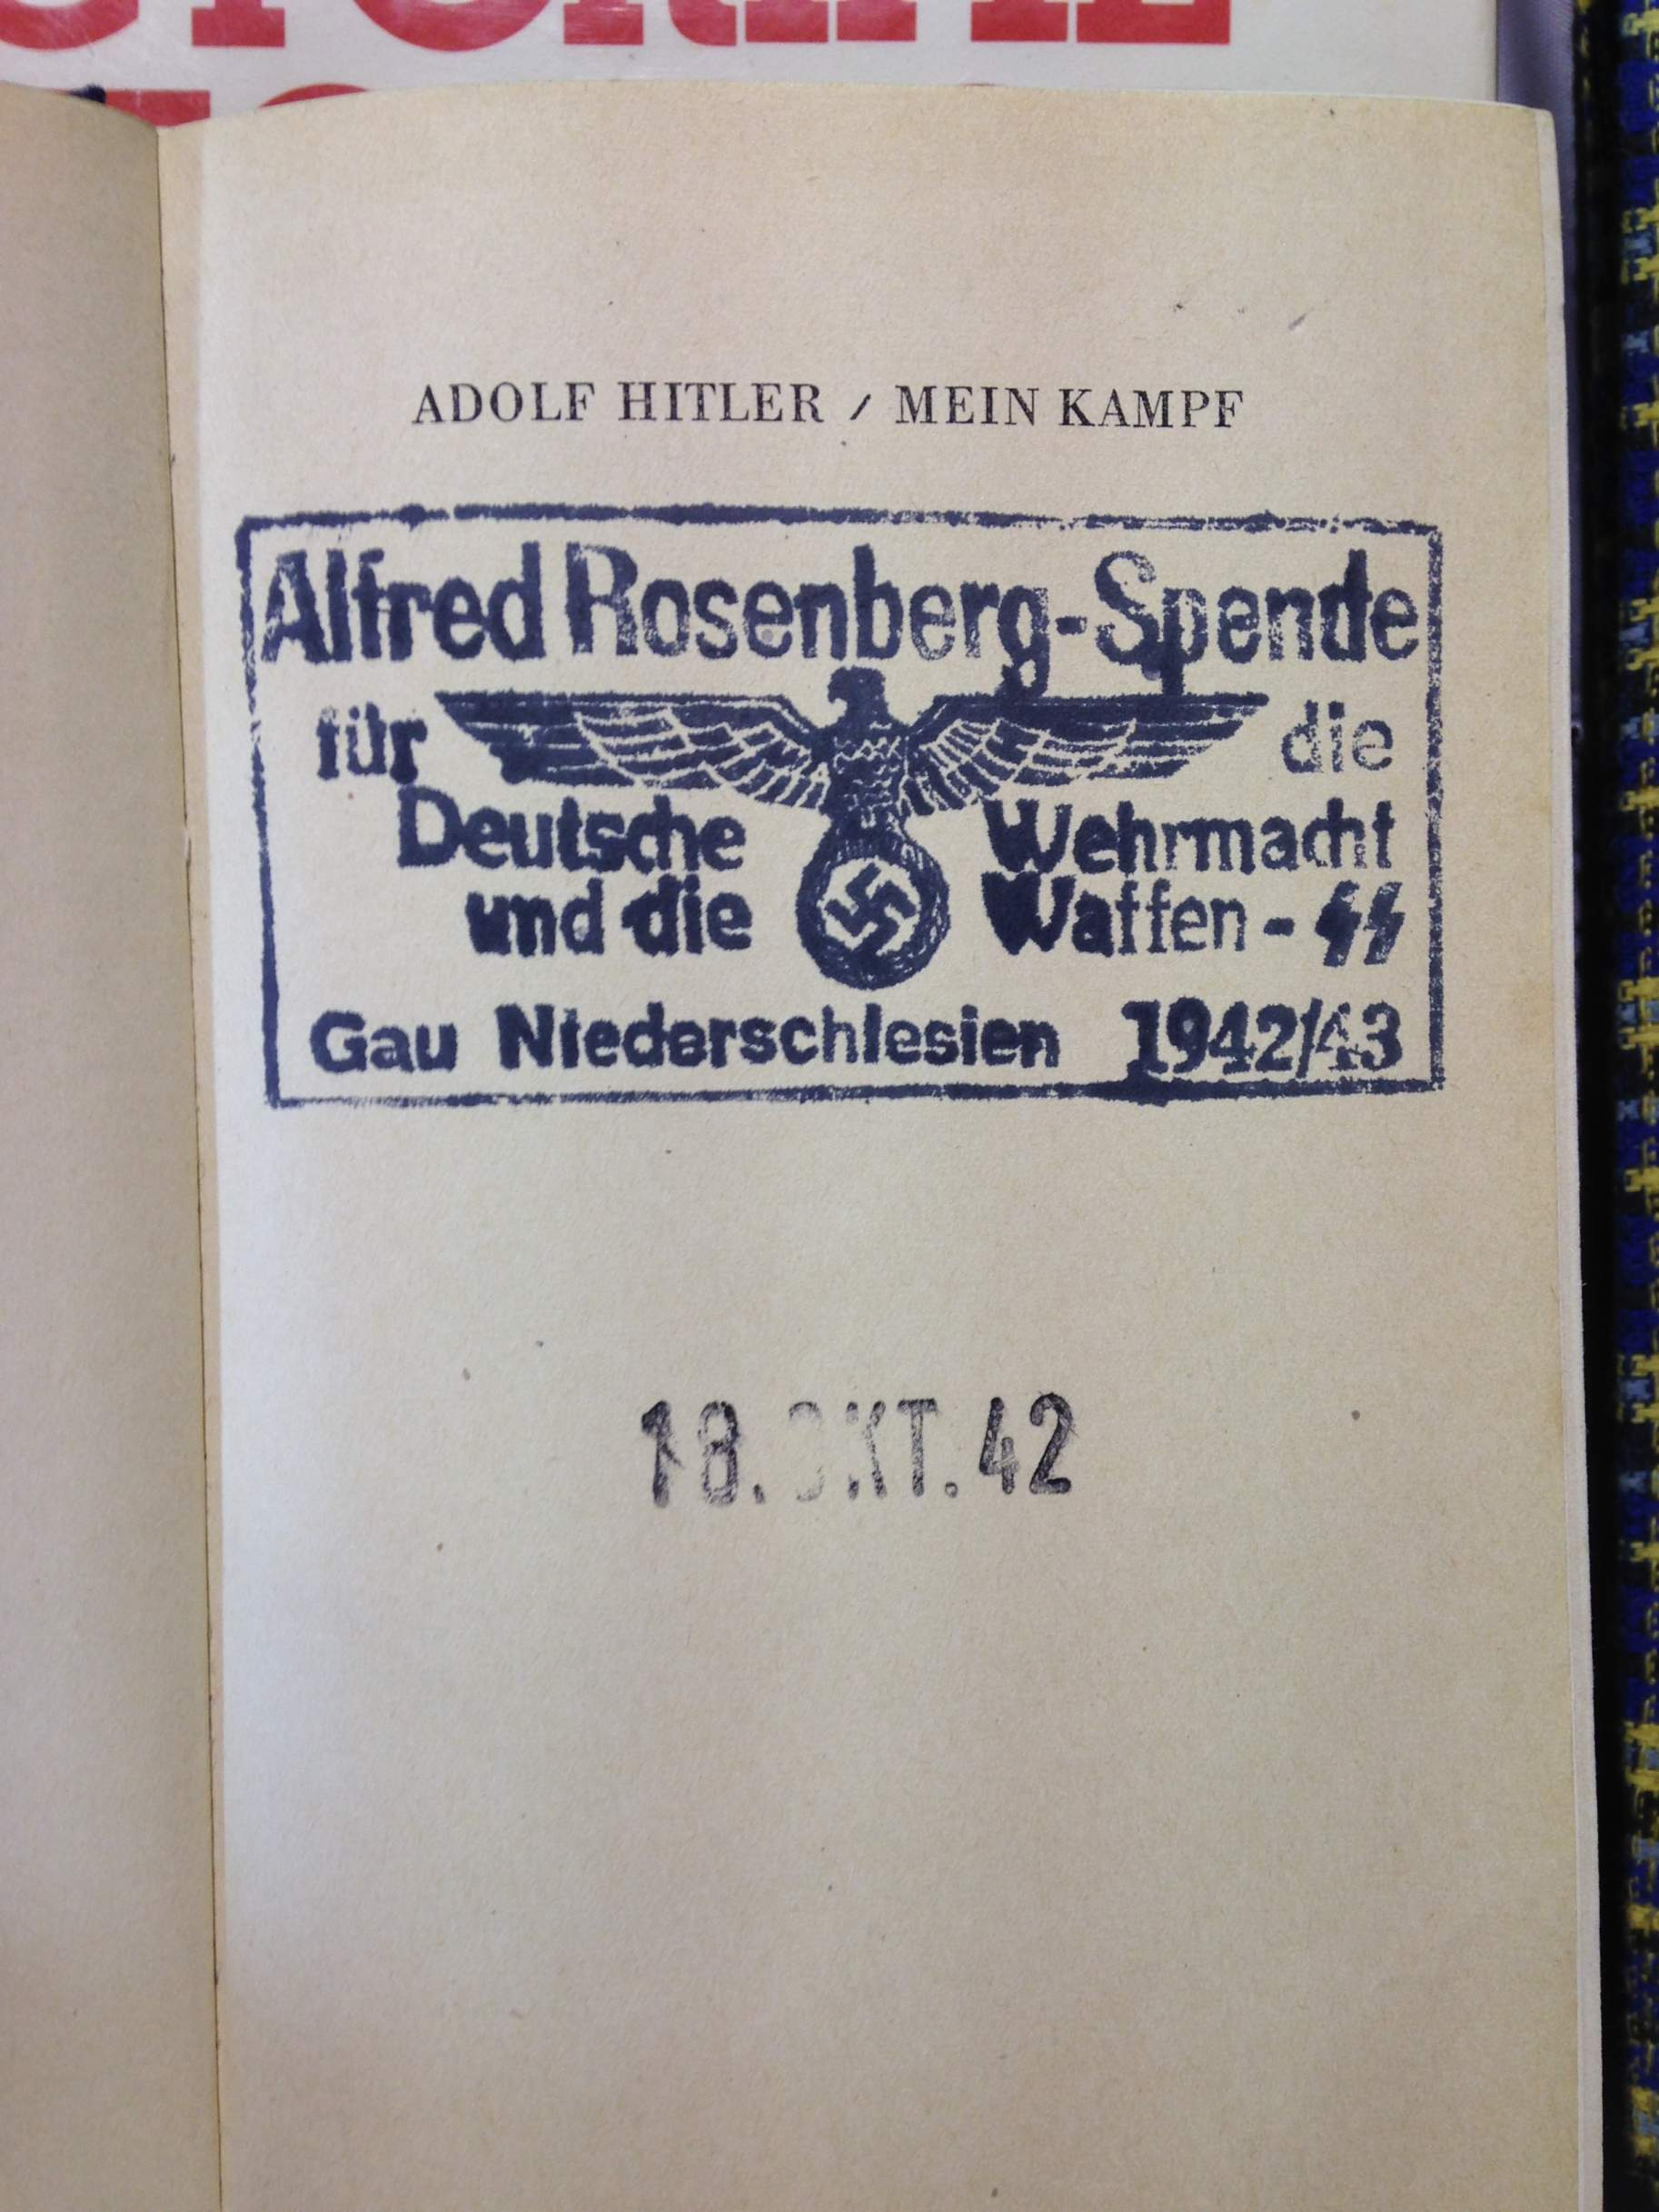 mein kampf essay Mein kampf, chapter 11: nation and race mein kampf is a book of two volumes authored by adolf hitler the first volume was written whilst dictated to rudolph hess.